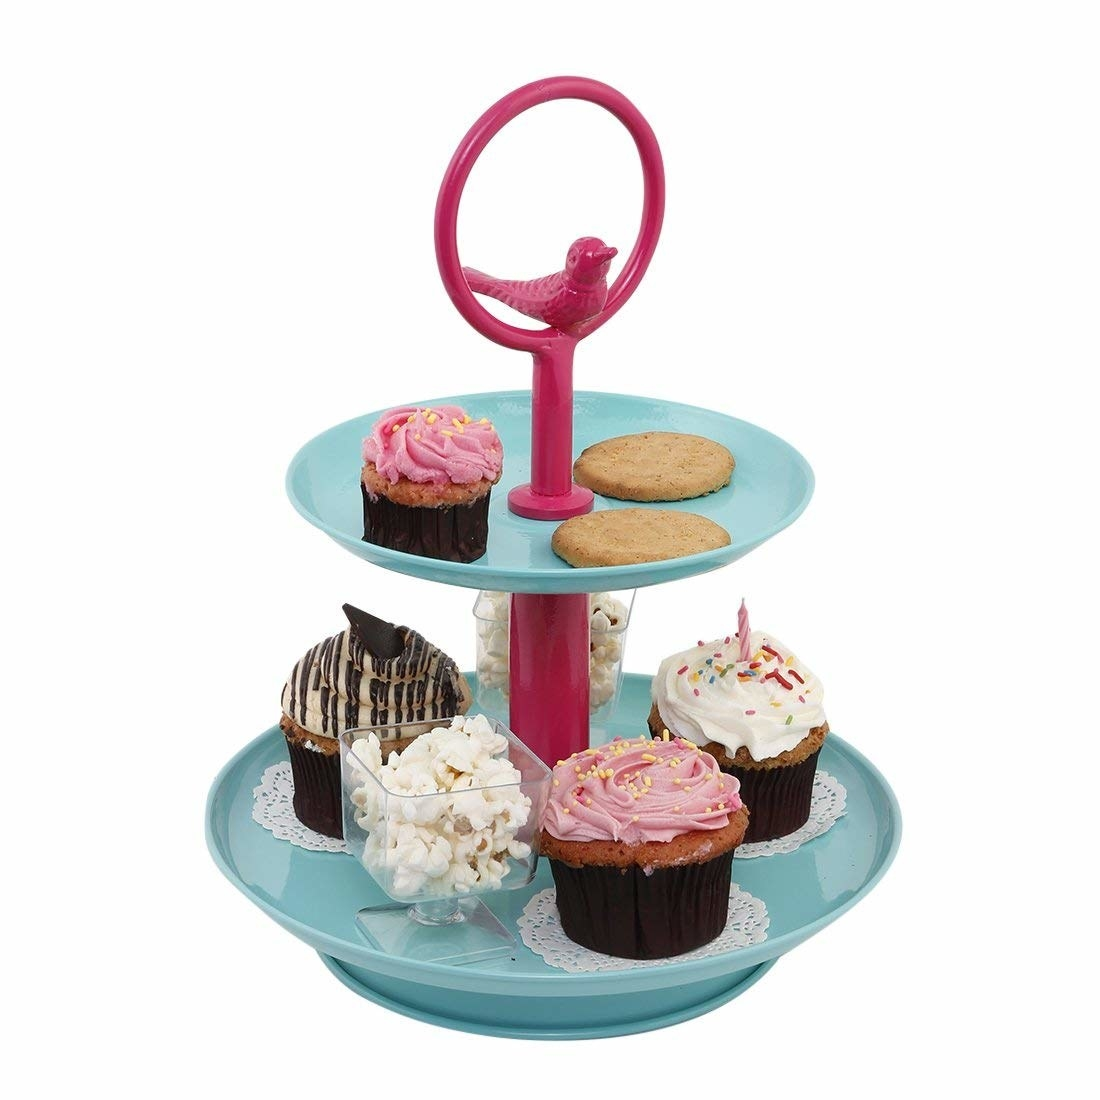 A two-tier blue and pink dessert stand with a pink decorative bird on top of the stand